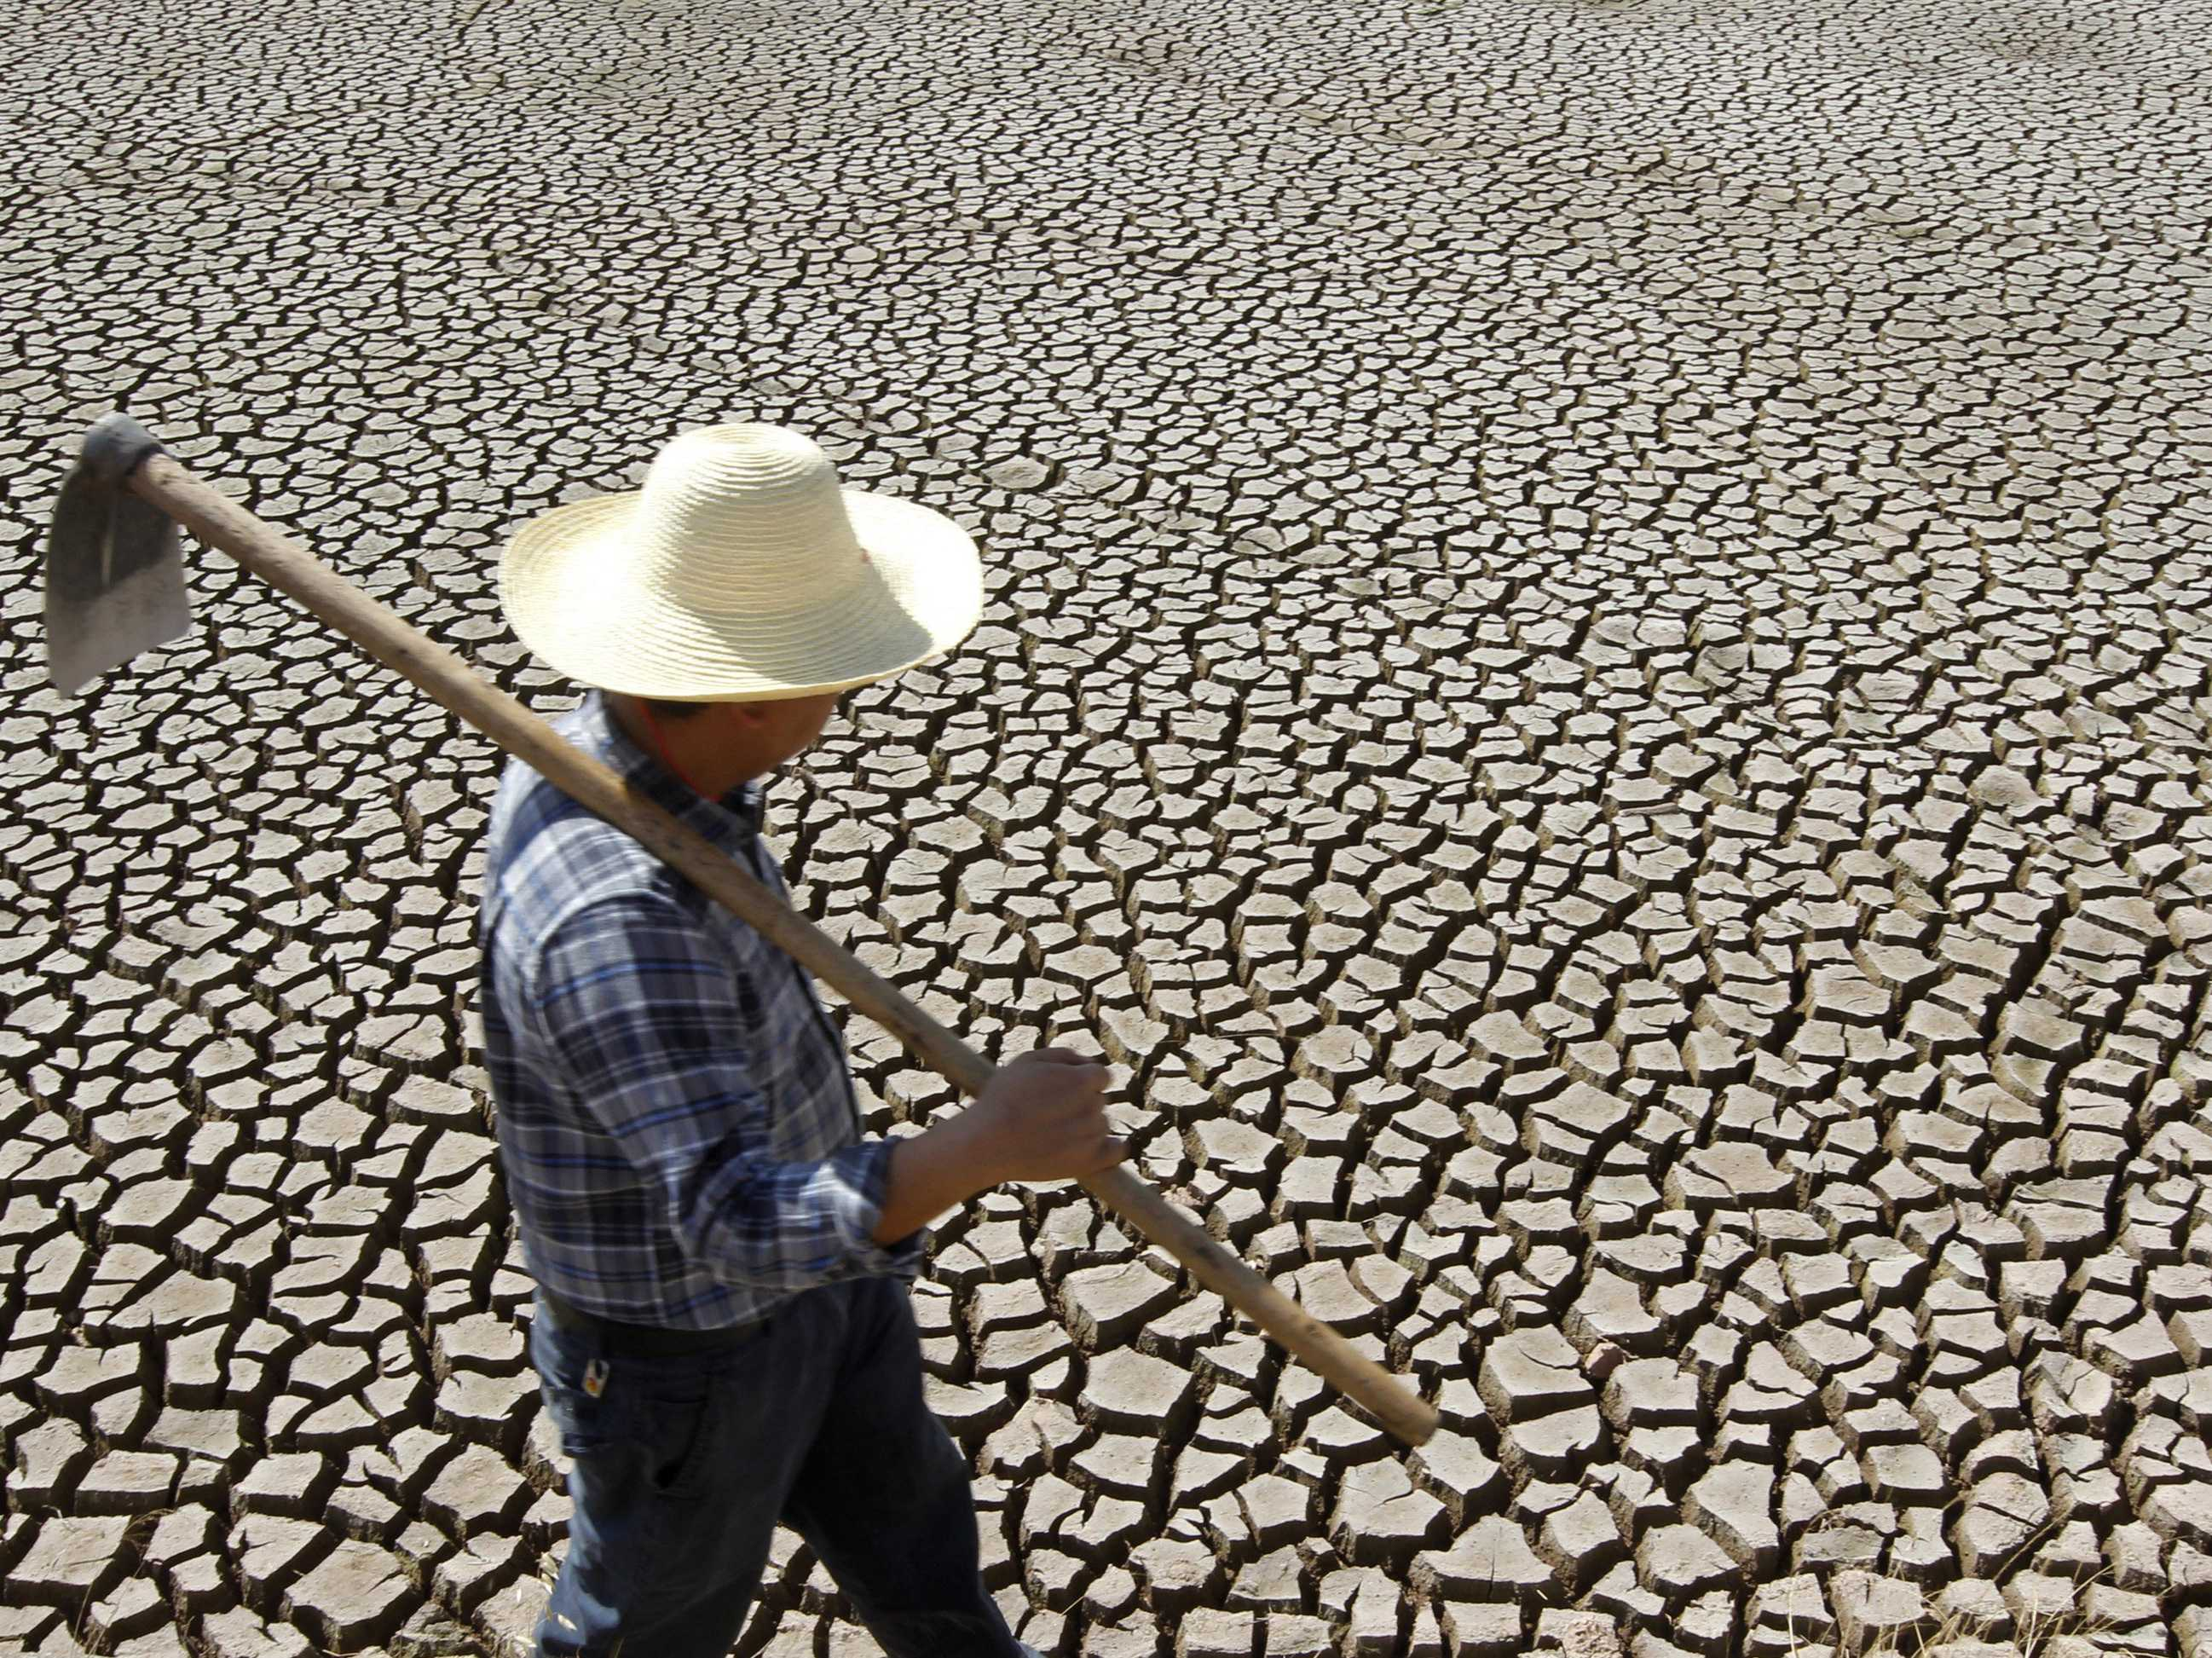 chinas water shortage To achieve its goal of becoming a leading global power by 2050, china must  resolve its looming water shortage, writes charlie parton.